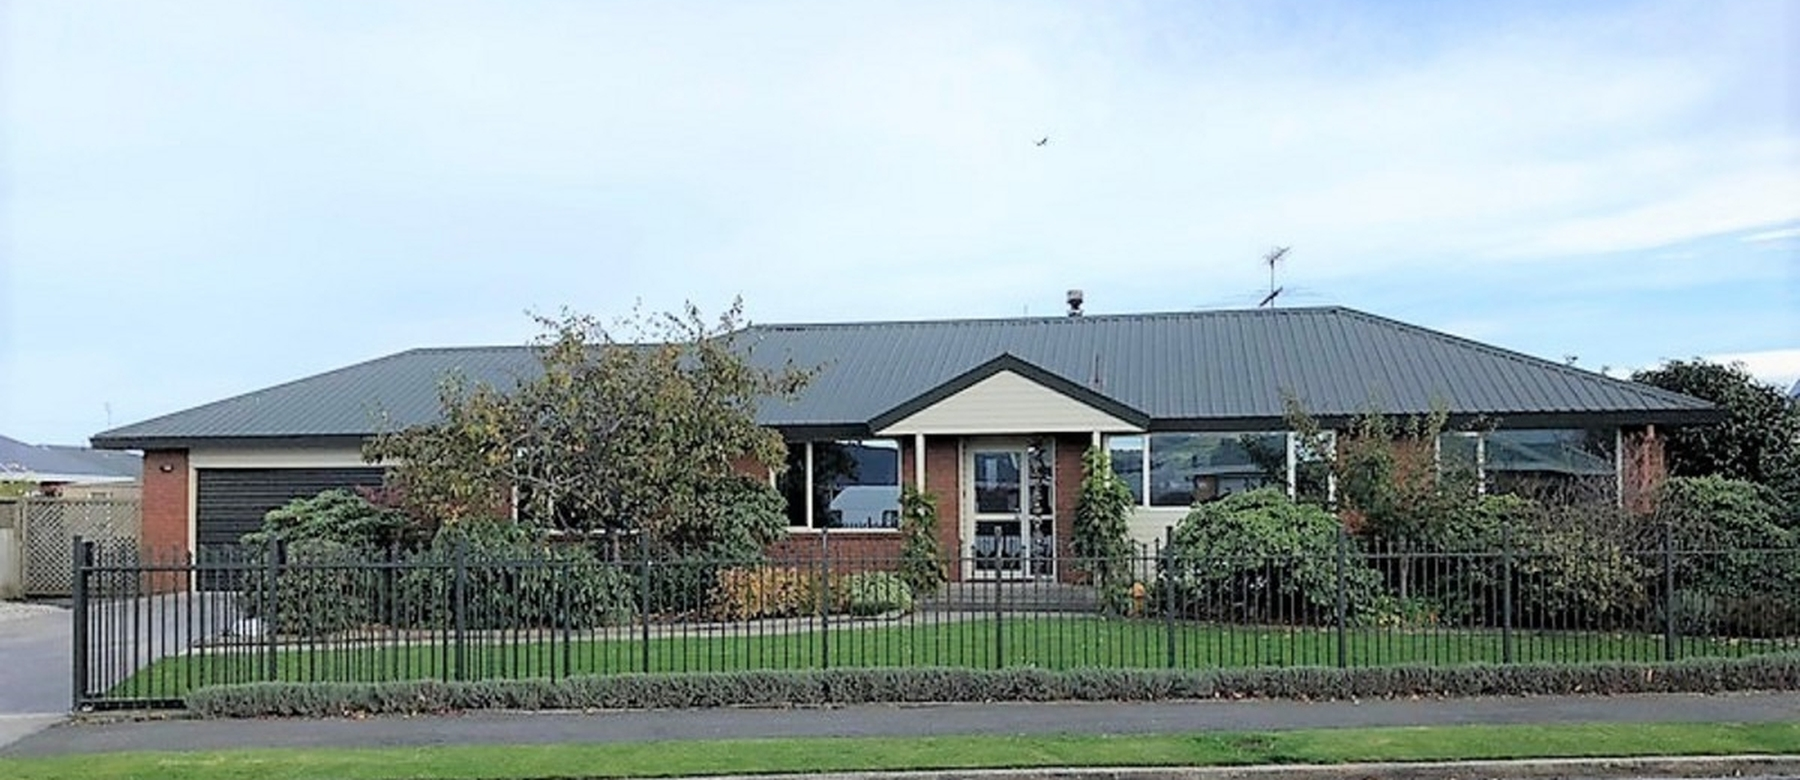 32 Silverstream Drive Mosgiel property image